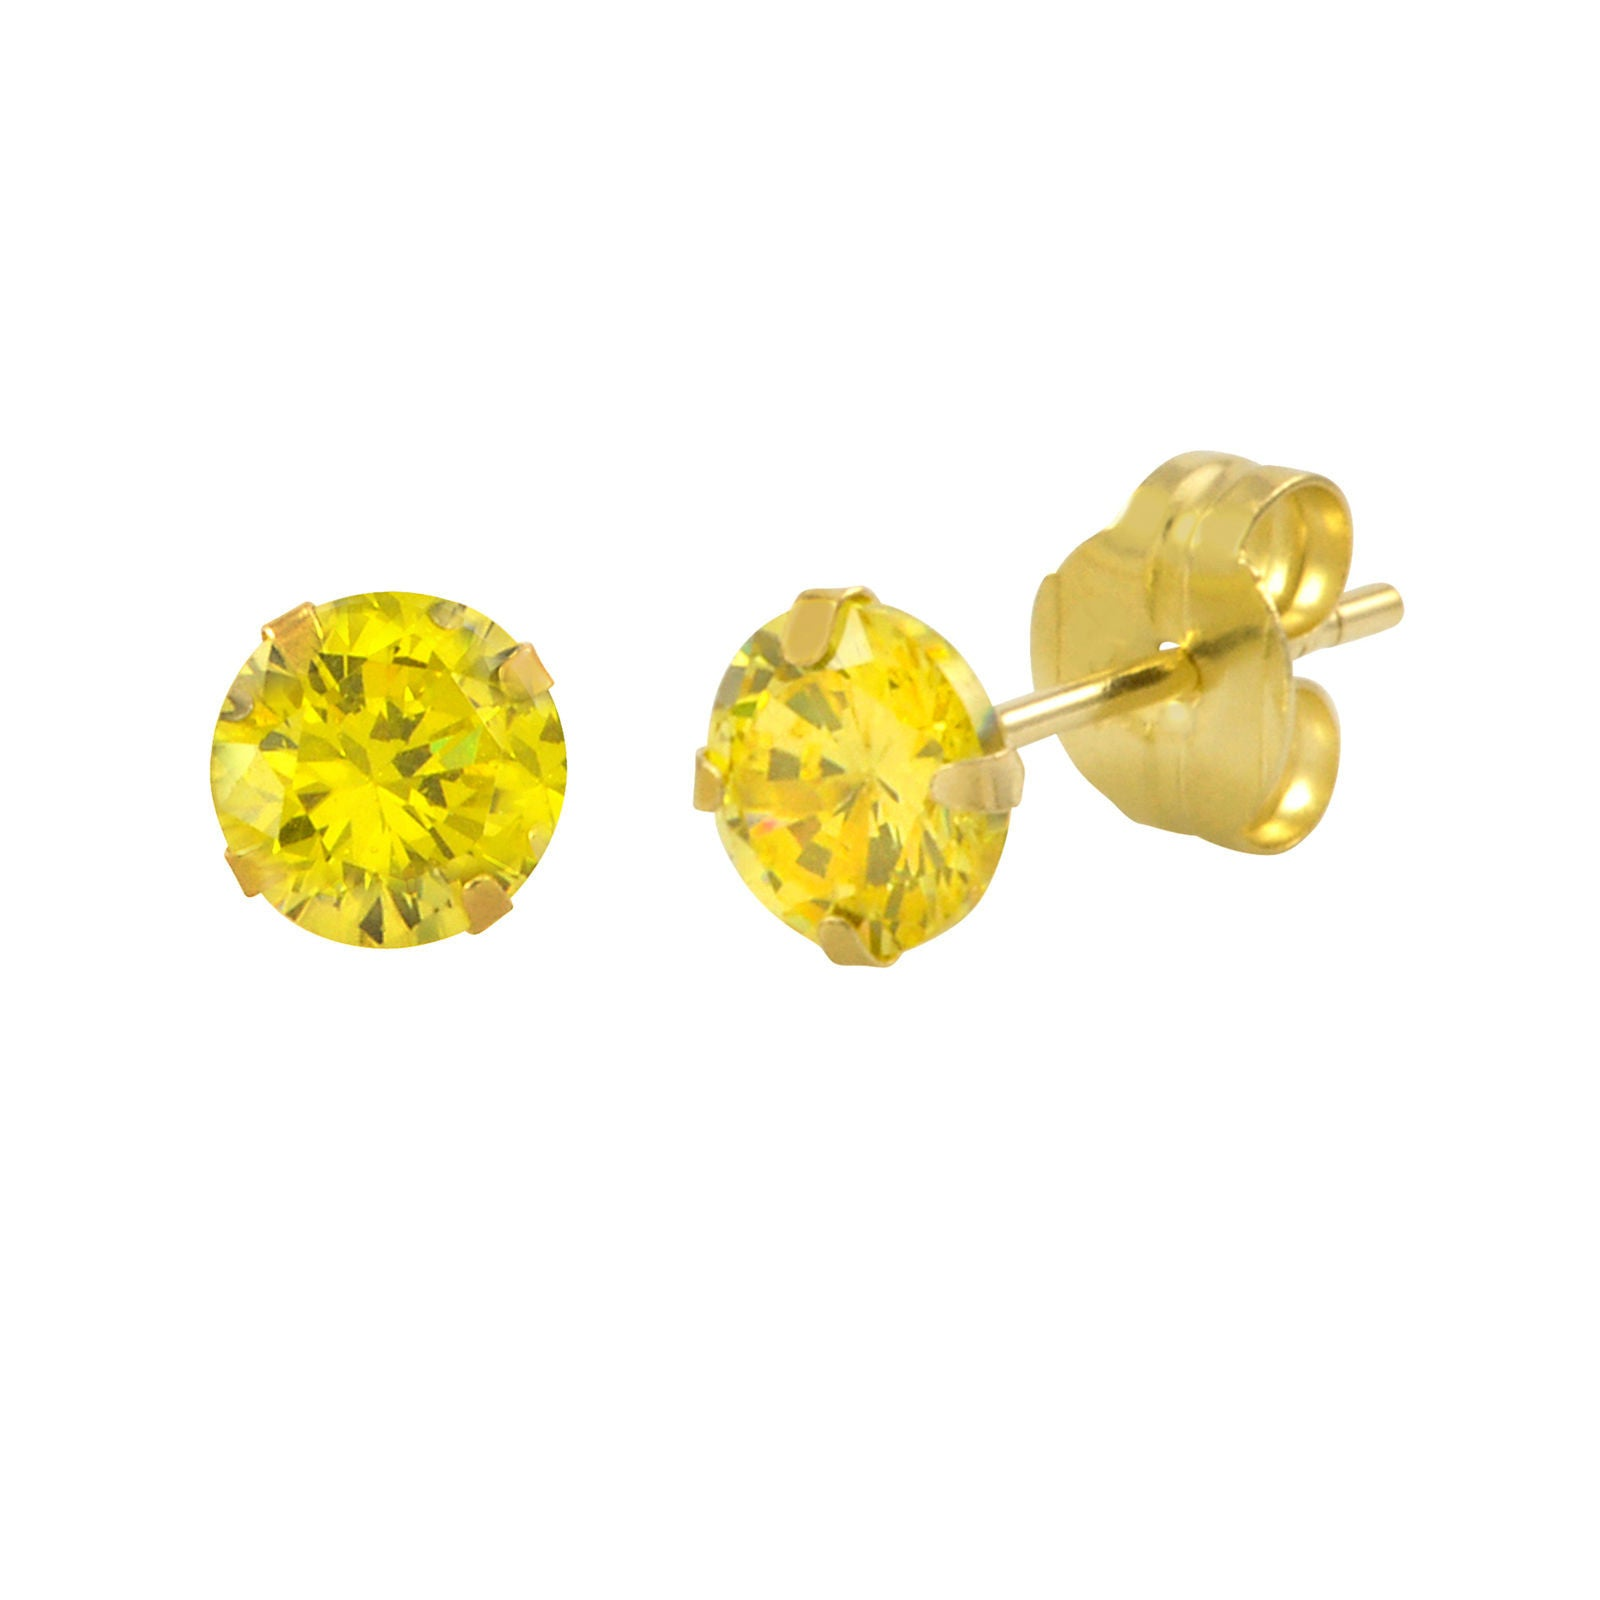 citrine notonthehighstreet com artique earrings boutique original stud product by artiqueboutique